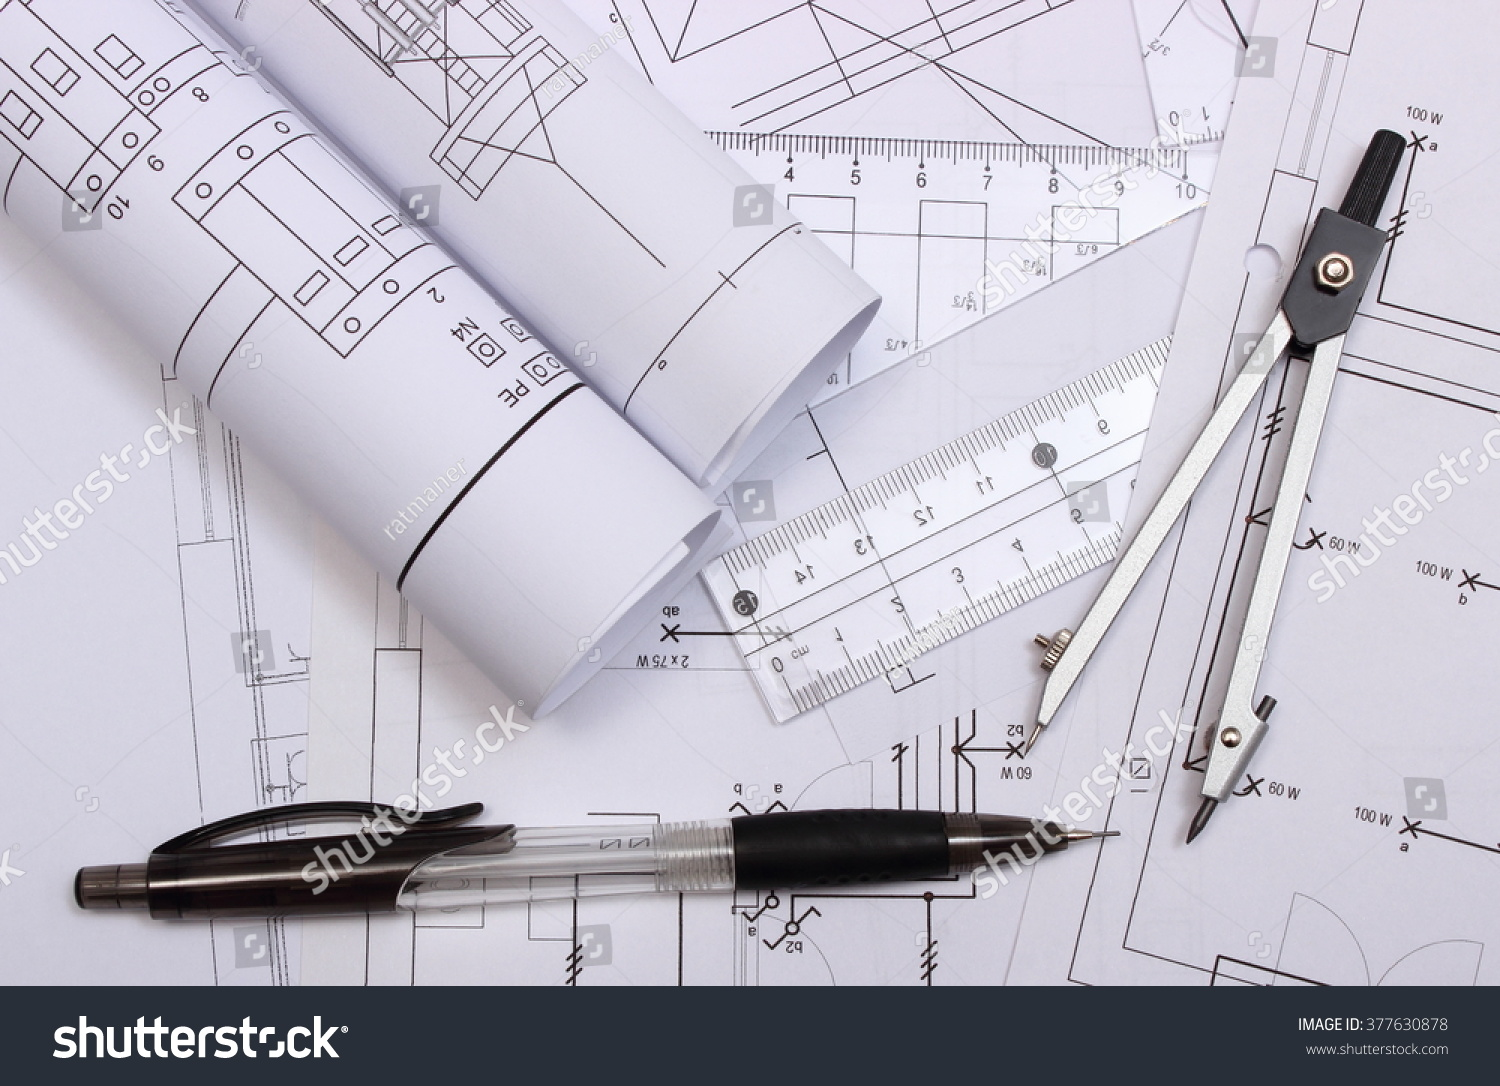 Rolls Electrical Diagrams Accessories Drawing Lying Stock Photo Engineering Of And For On Construction House Drawings